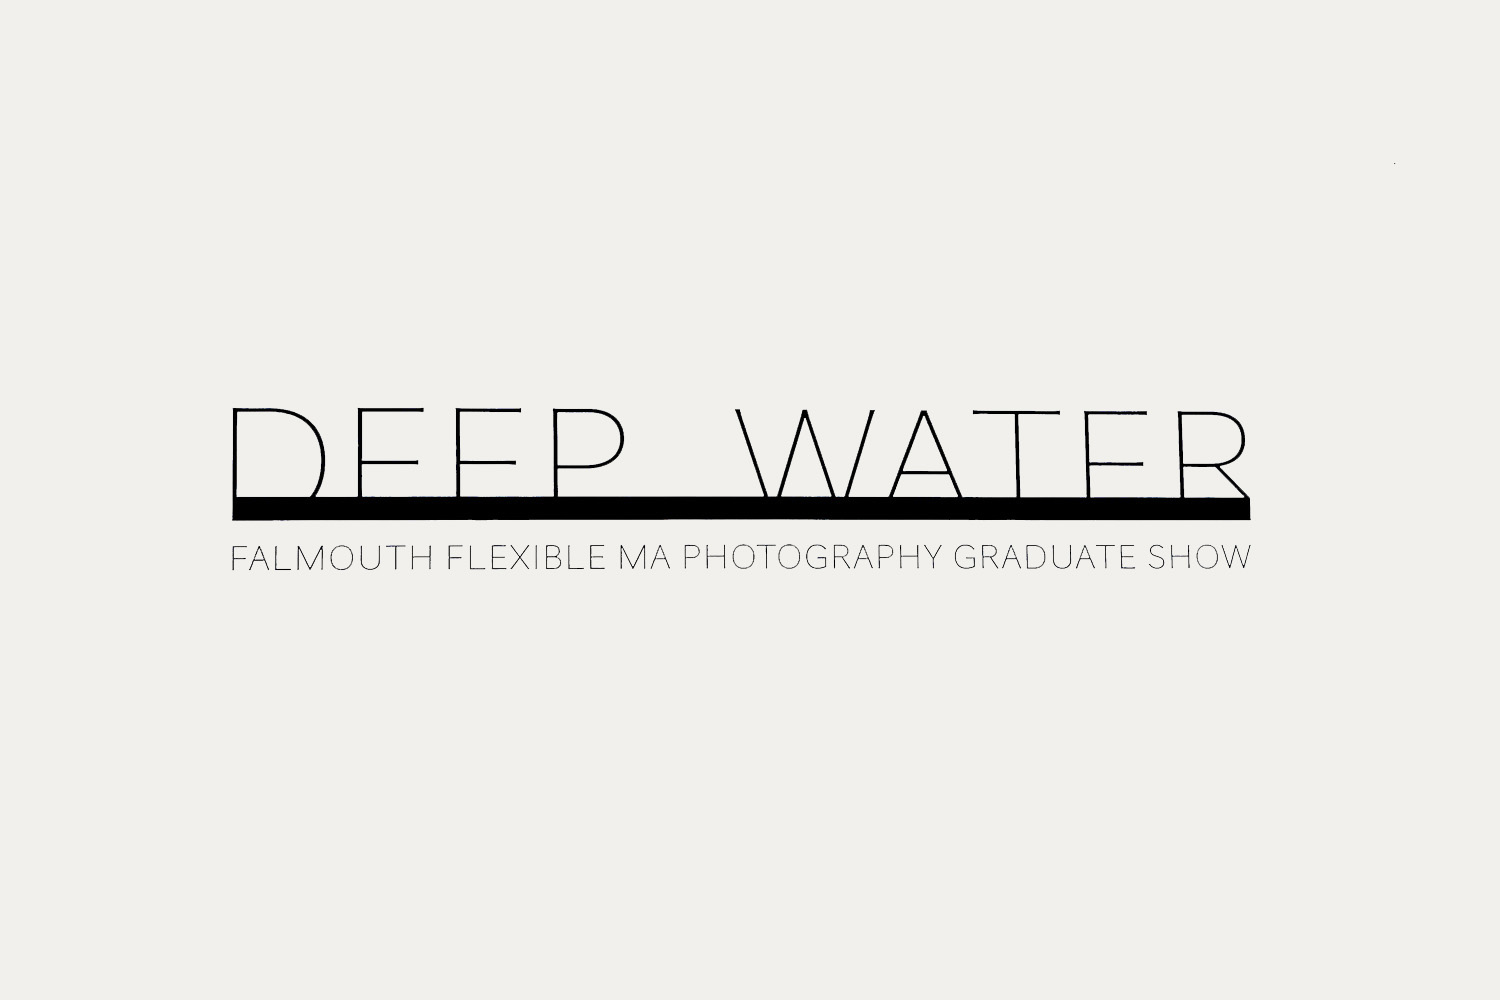 01-Deep Water Exhibition 2019-1 copy-2.jpg